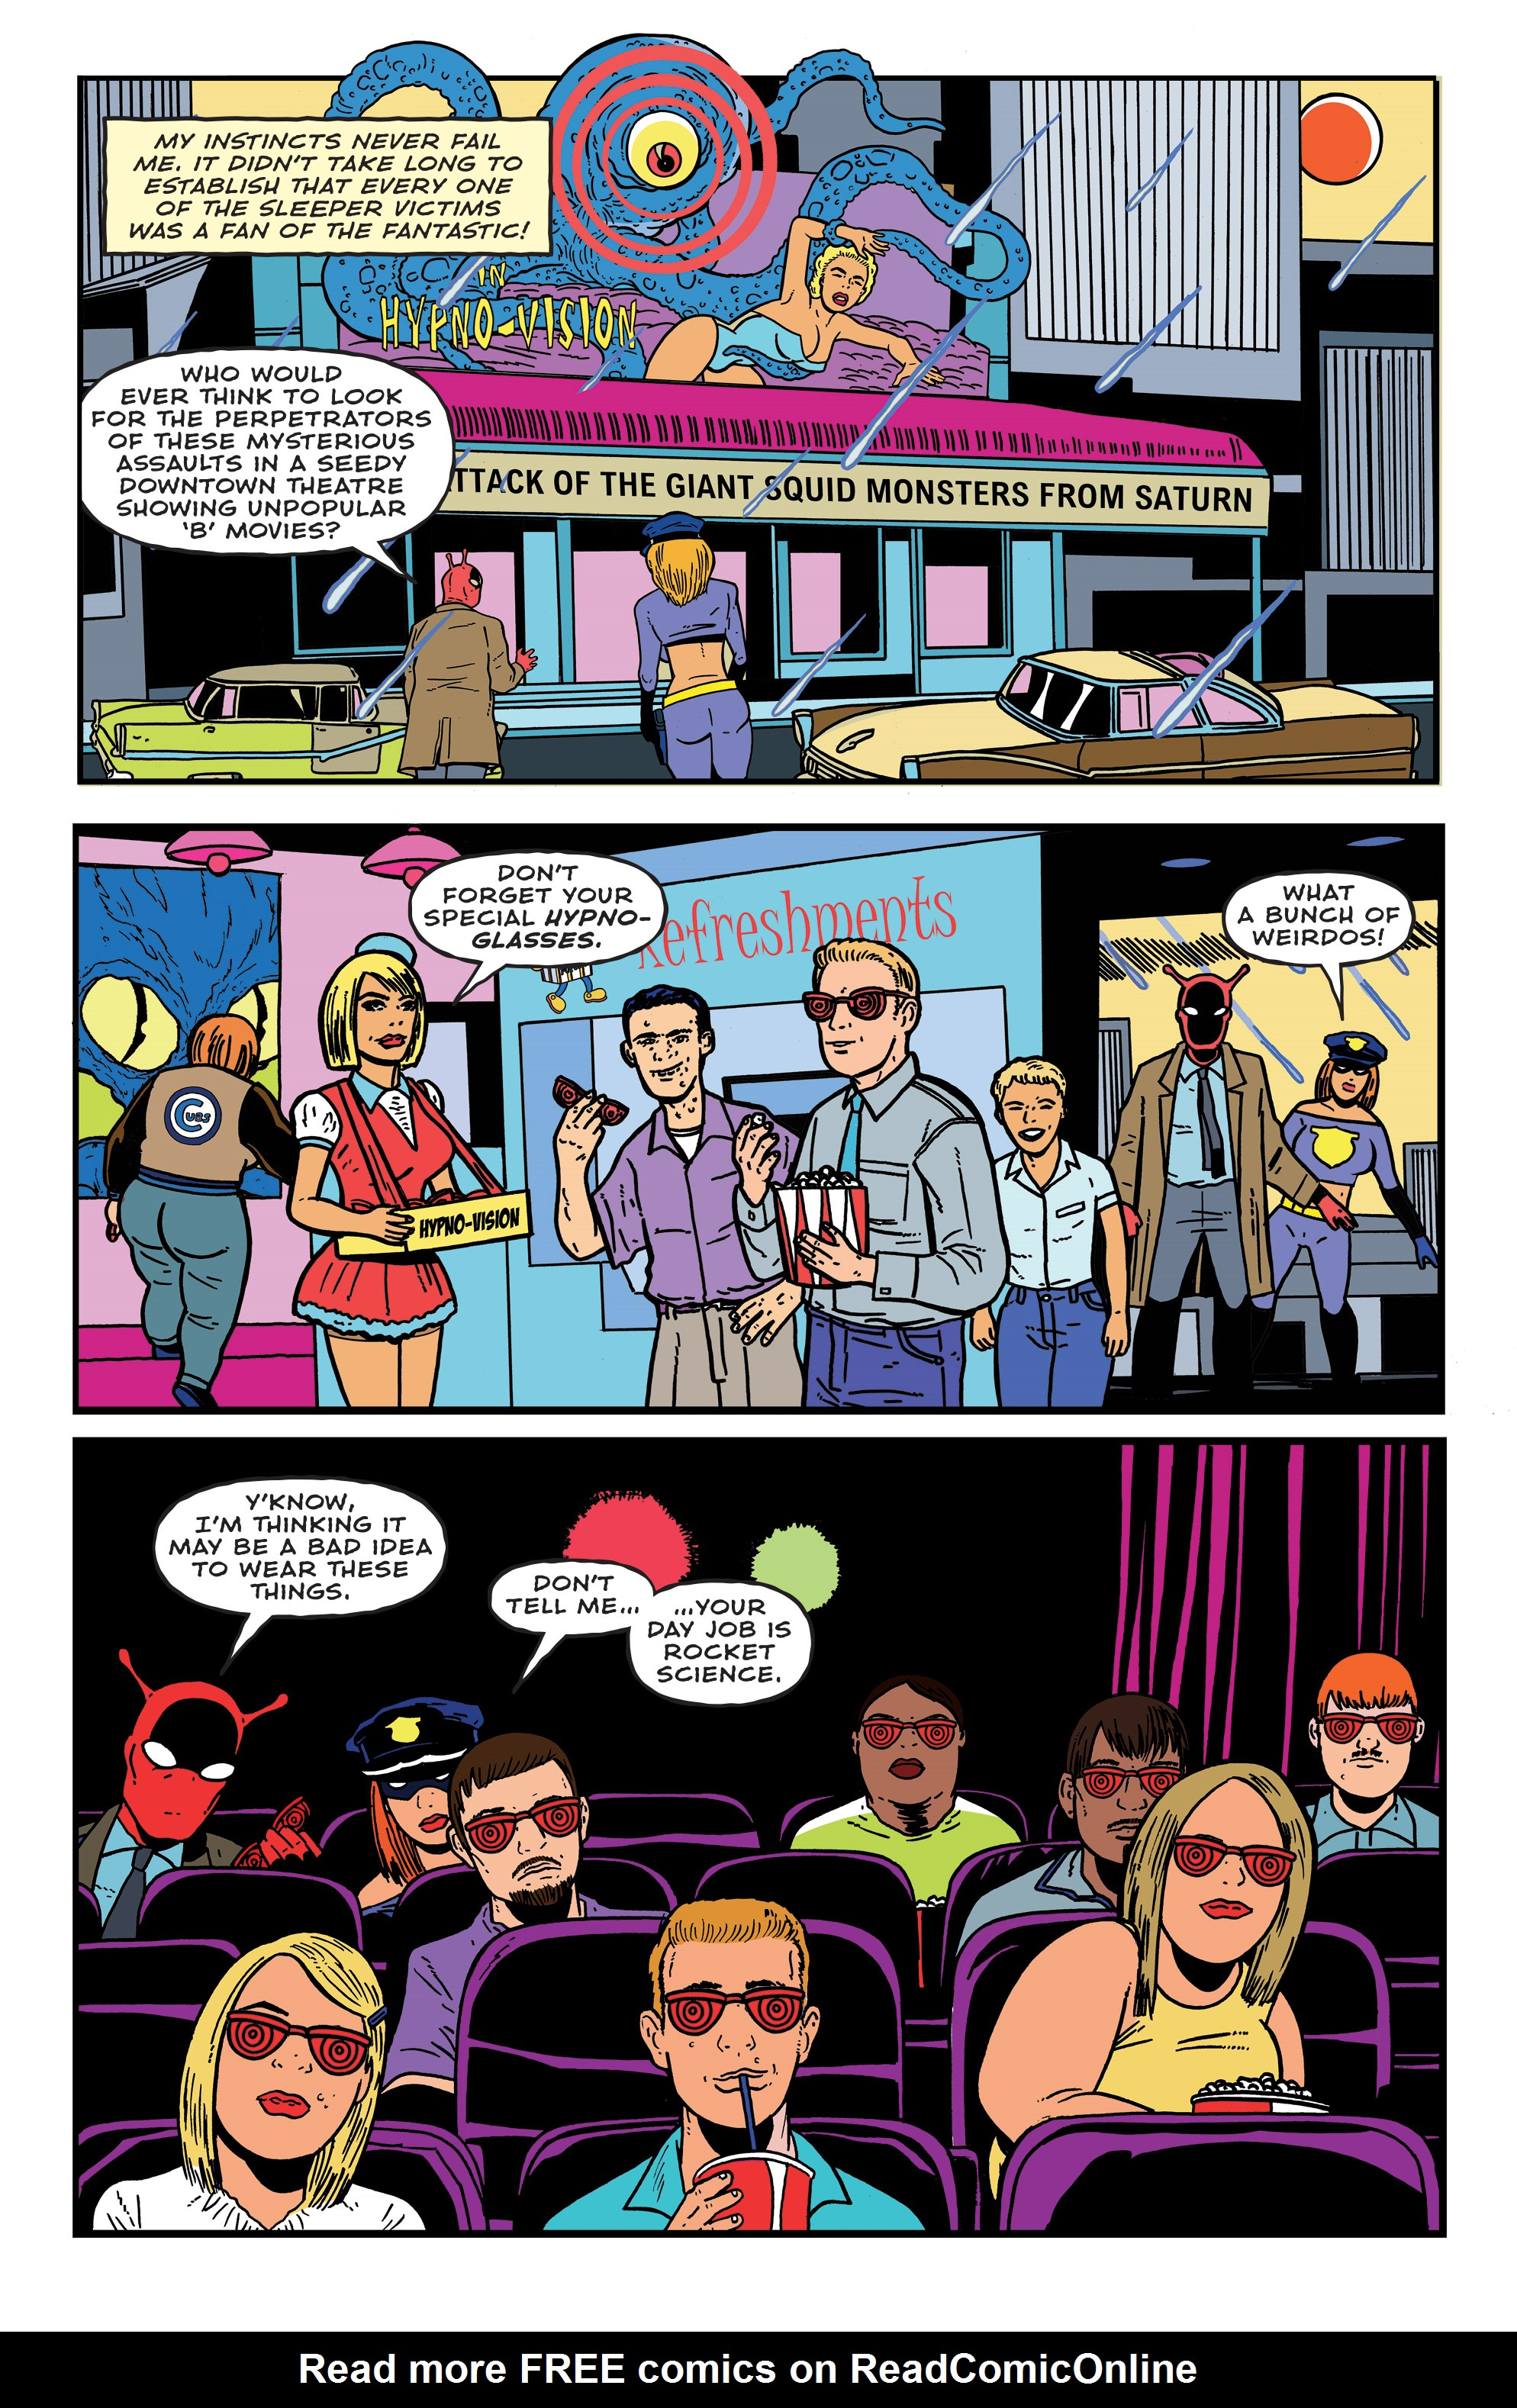 Read online Bulletproof Coffin: The Thousand Yard Stare comic -  Issue # Full - 14